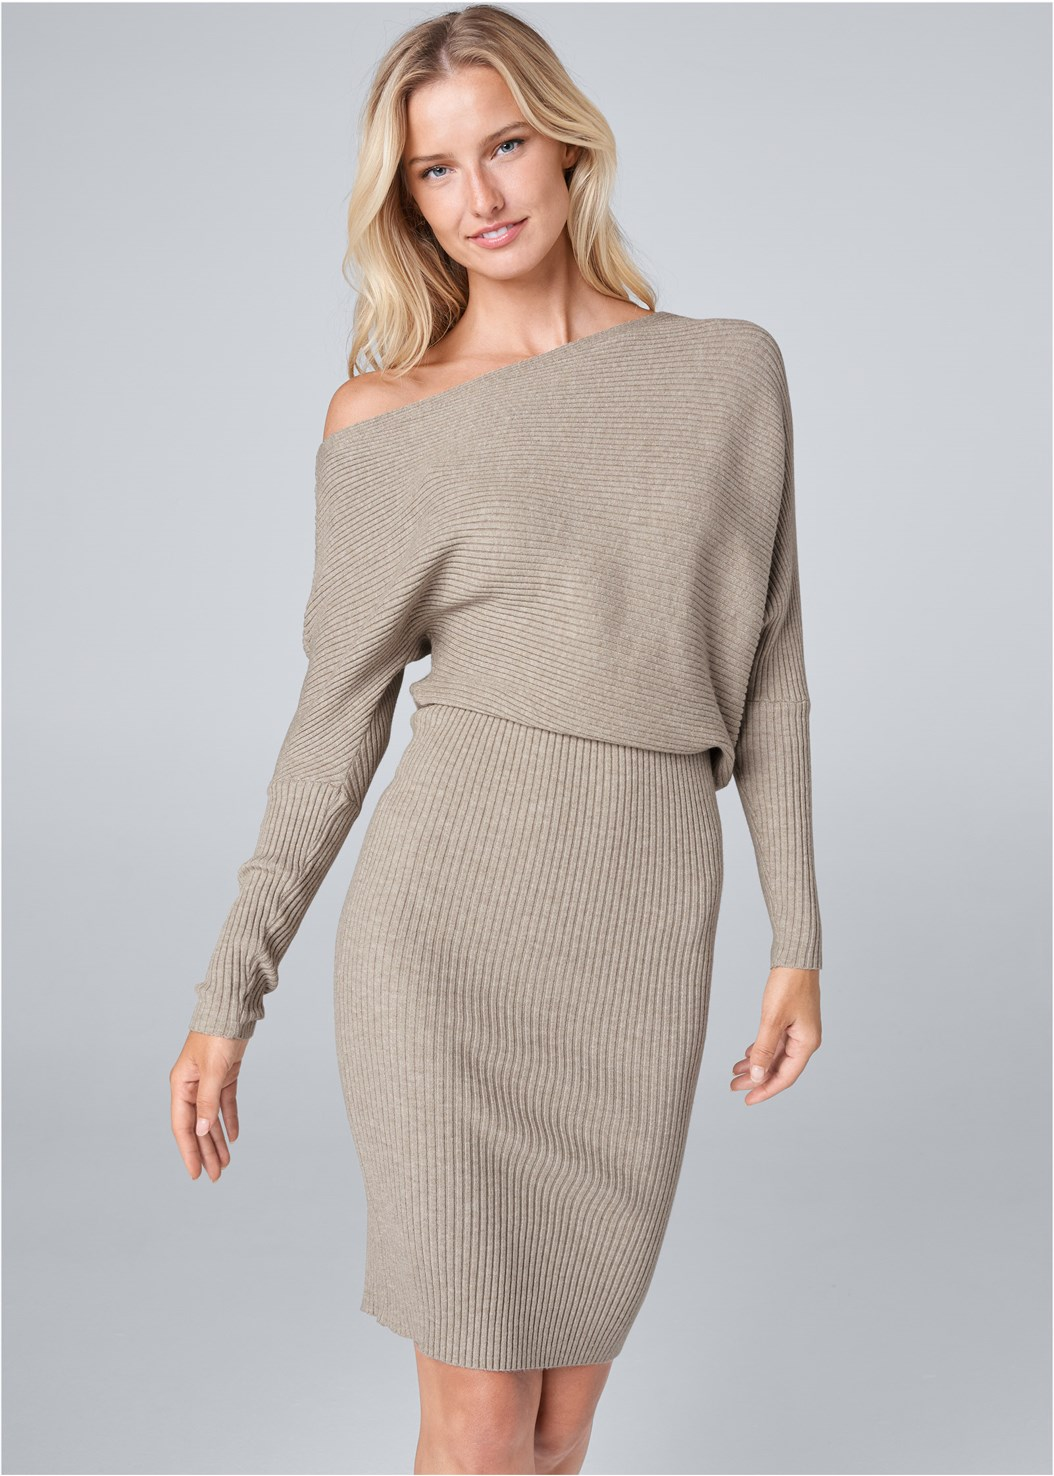 One Shoulder Sweater Dress,Rhinestone Ankle Wrap Heels